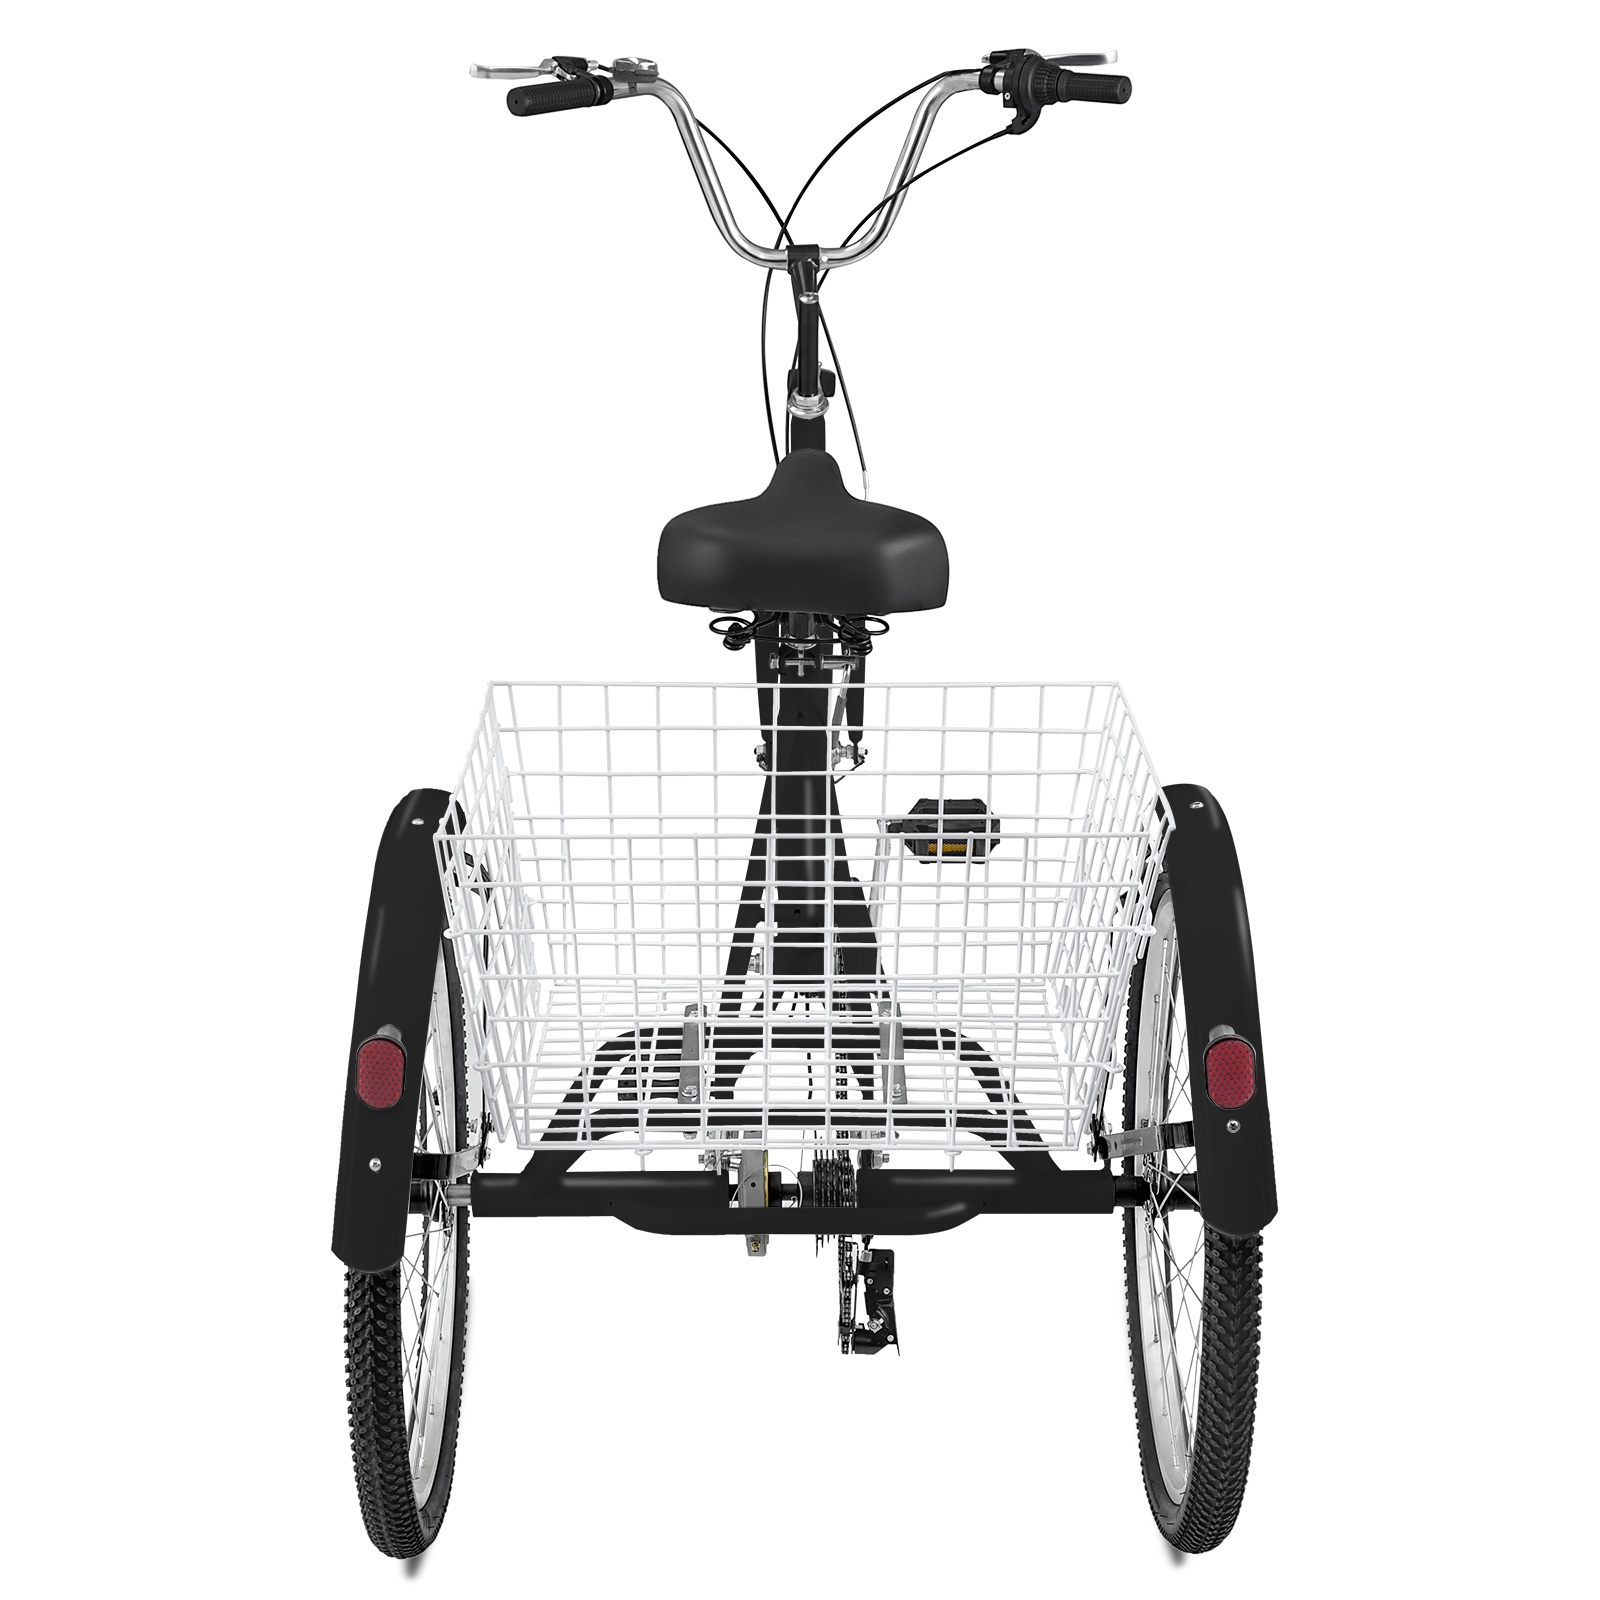 20-24-26-034-Adult-Tricycle-1-7-Speed-3-Wheel-Large-Basket-For-Shopping-Optional thumbnail 168